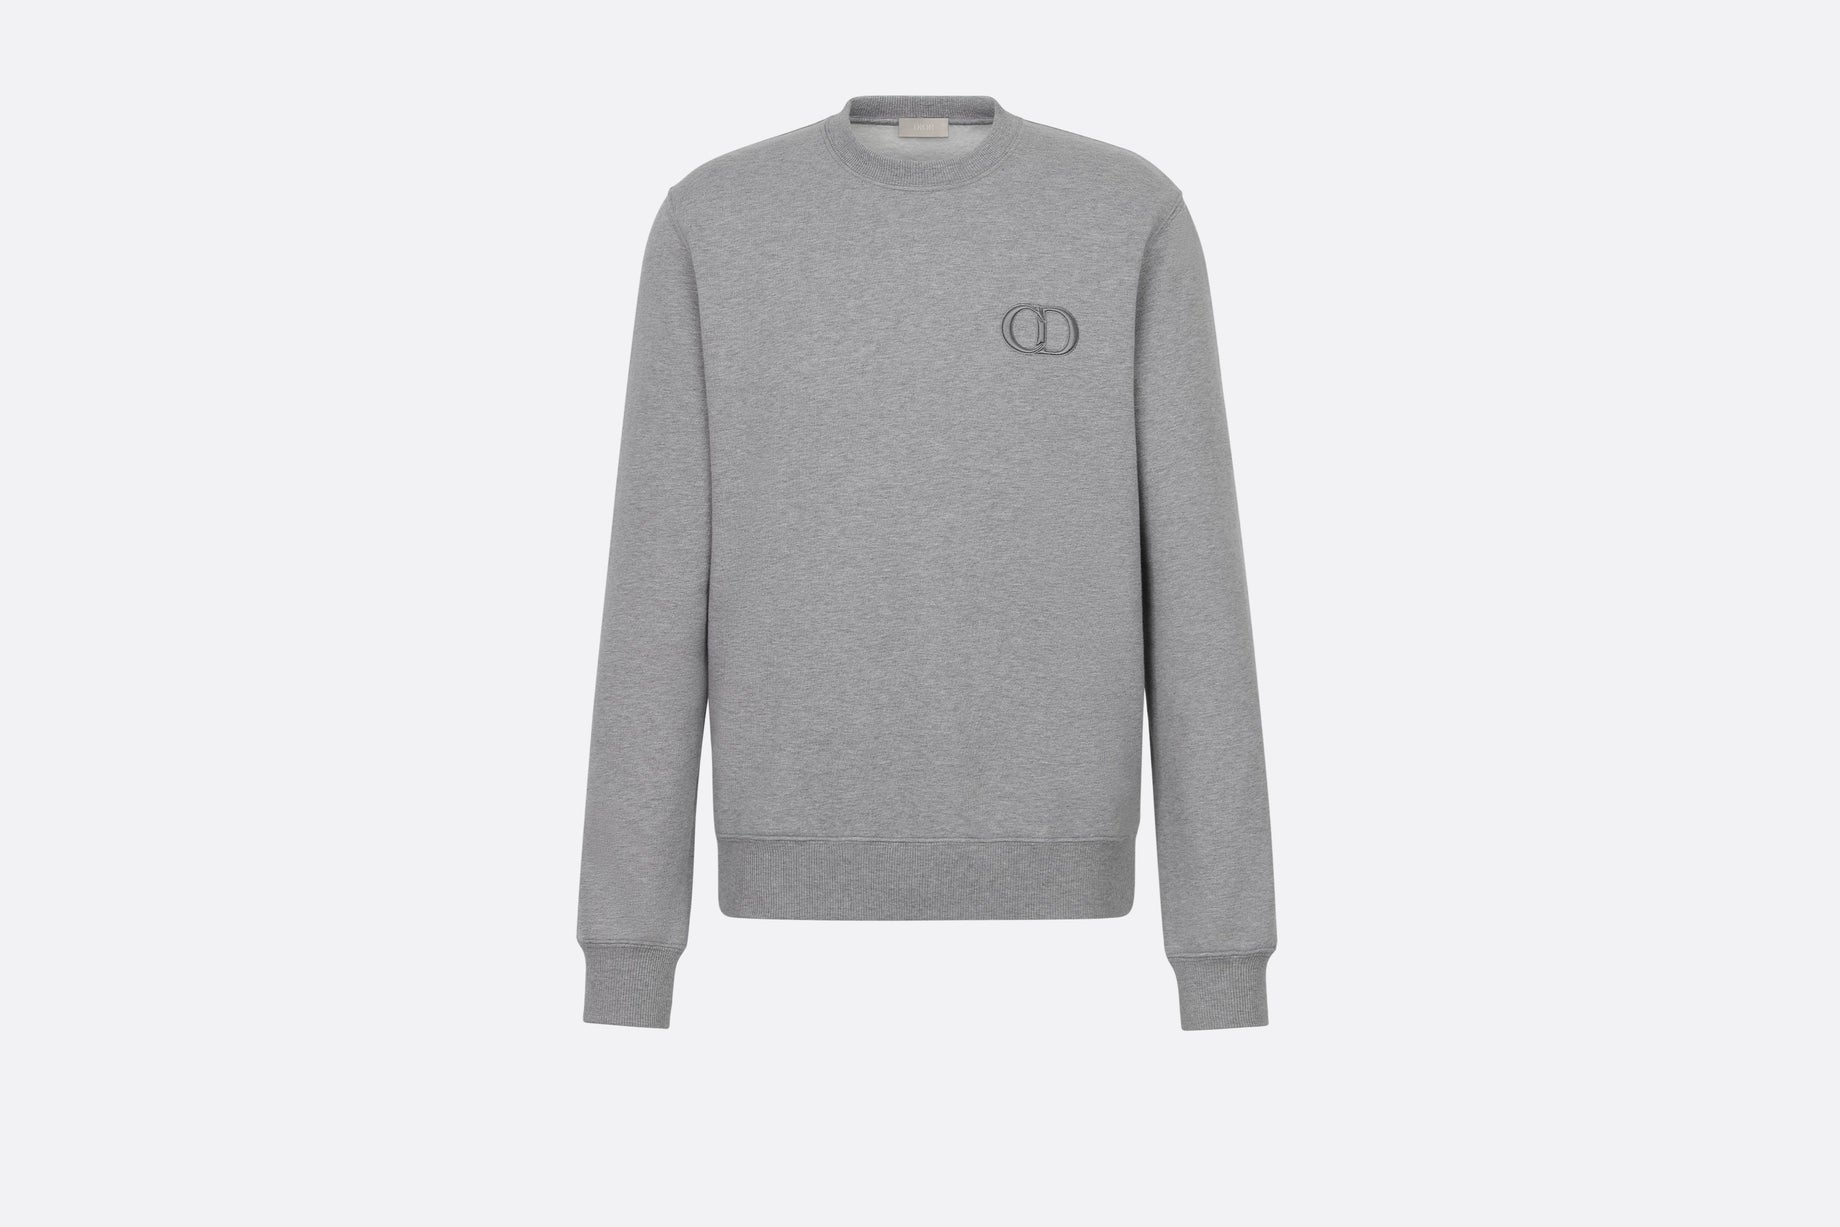 Sweatshirt with 'CD Icon' Signature • Gray Cotton Jersey